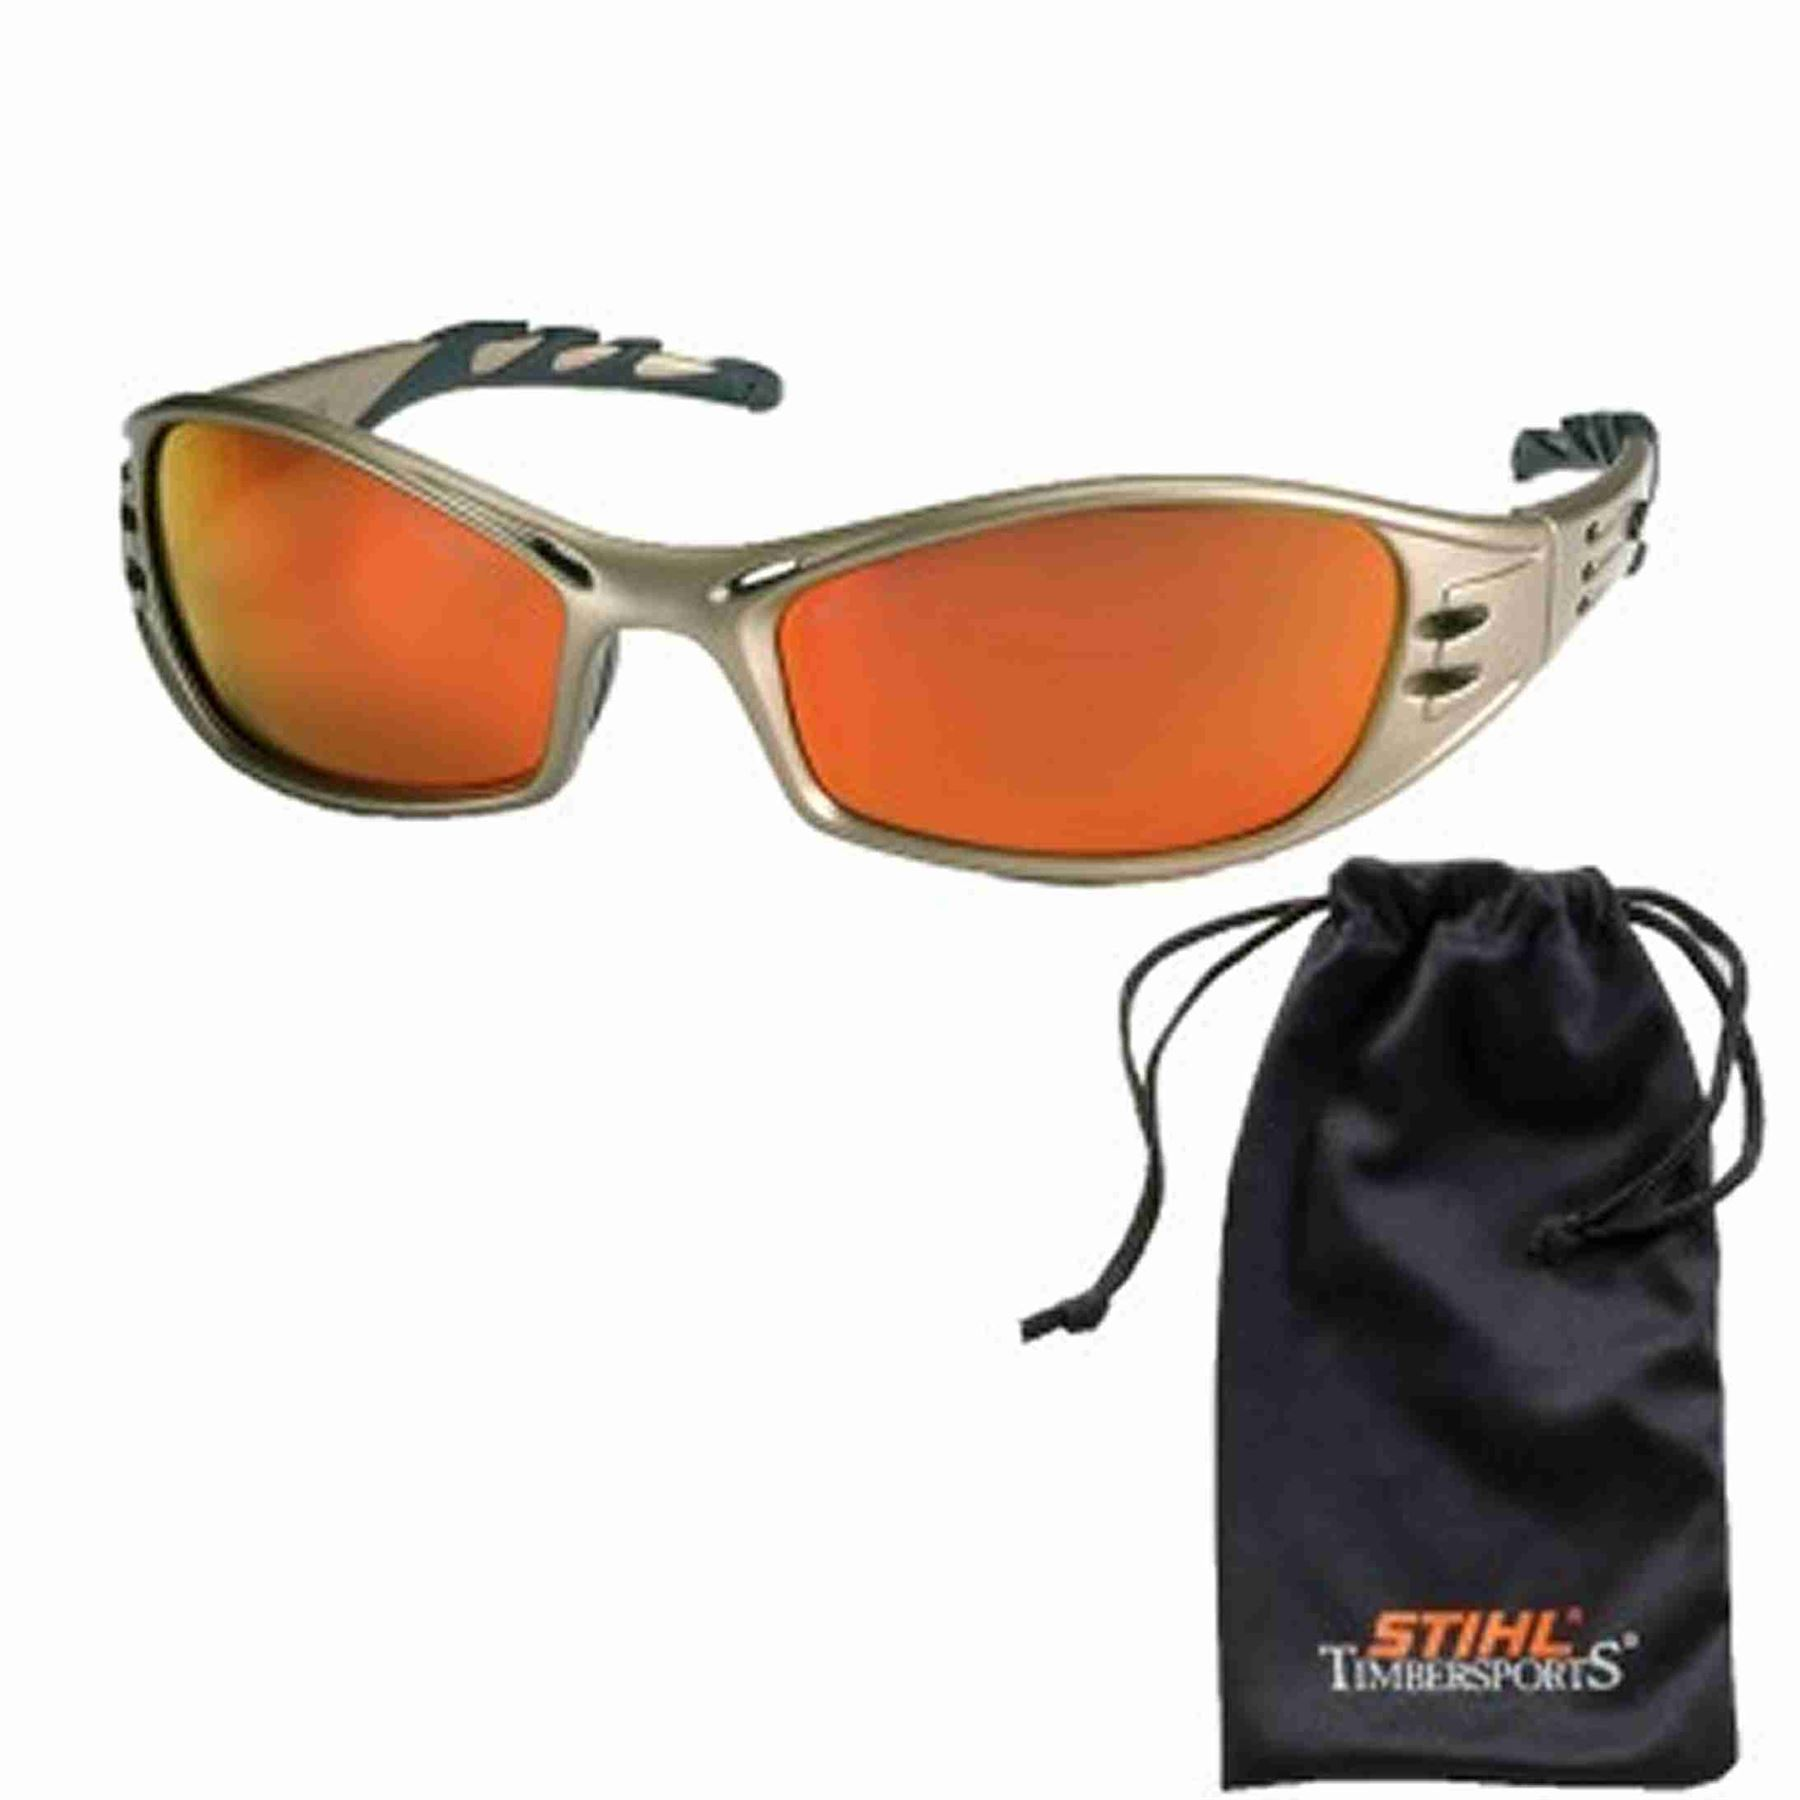 buy aviator sunglasses  timbersports sunglasses